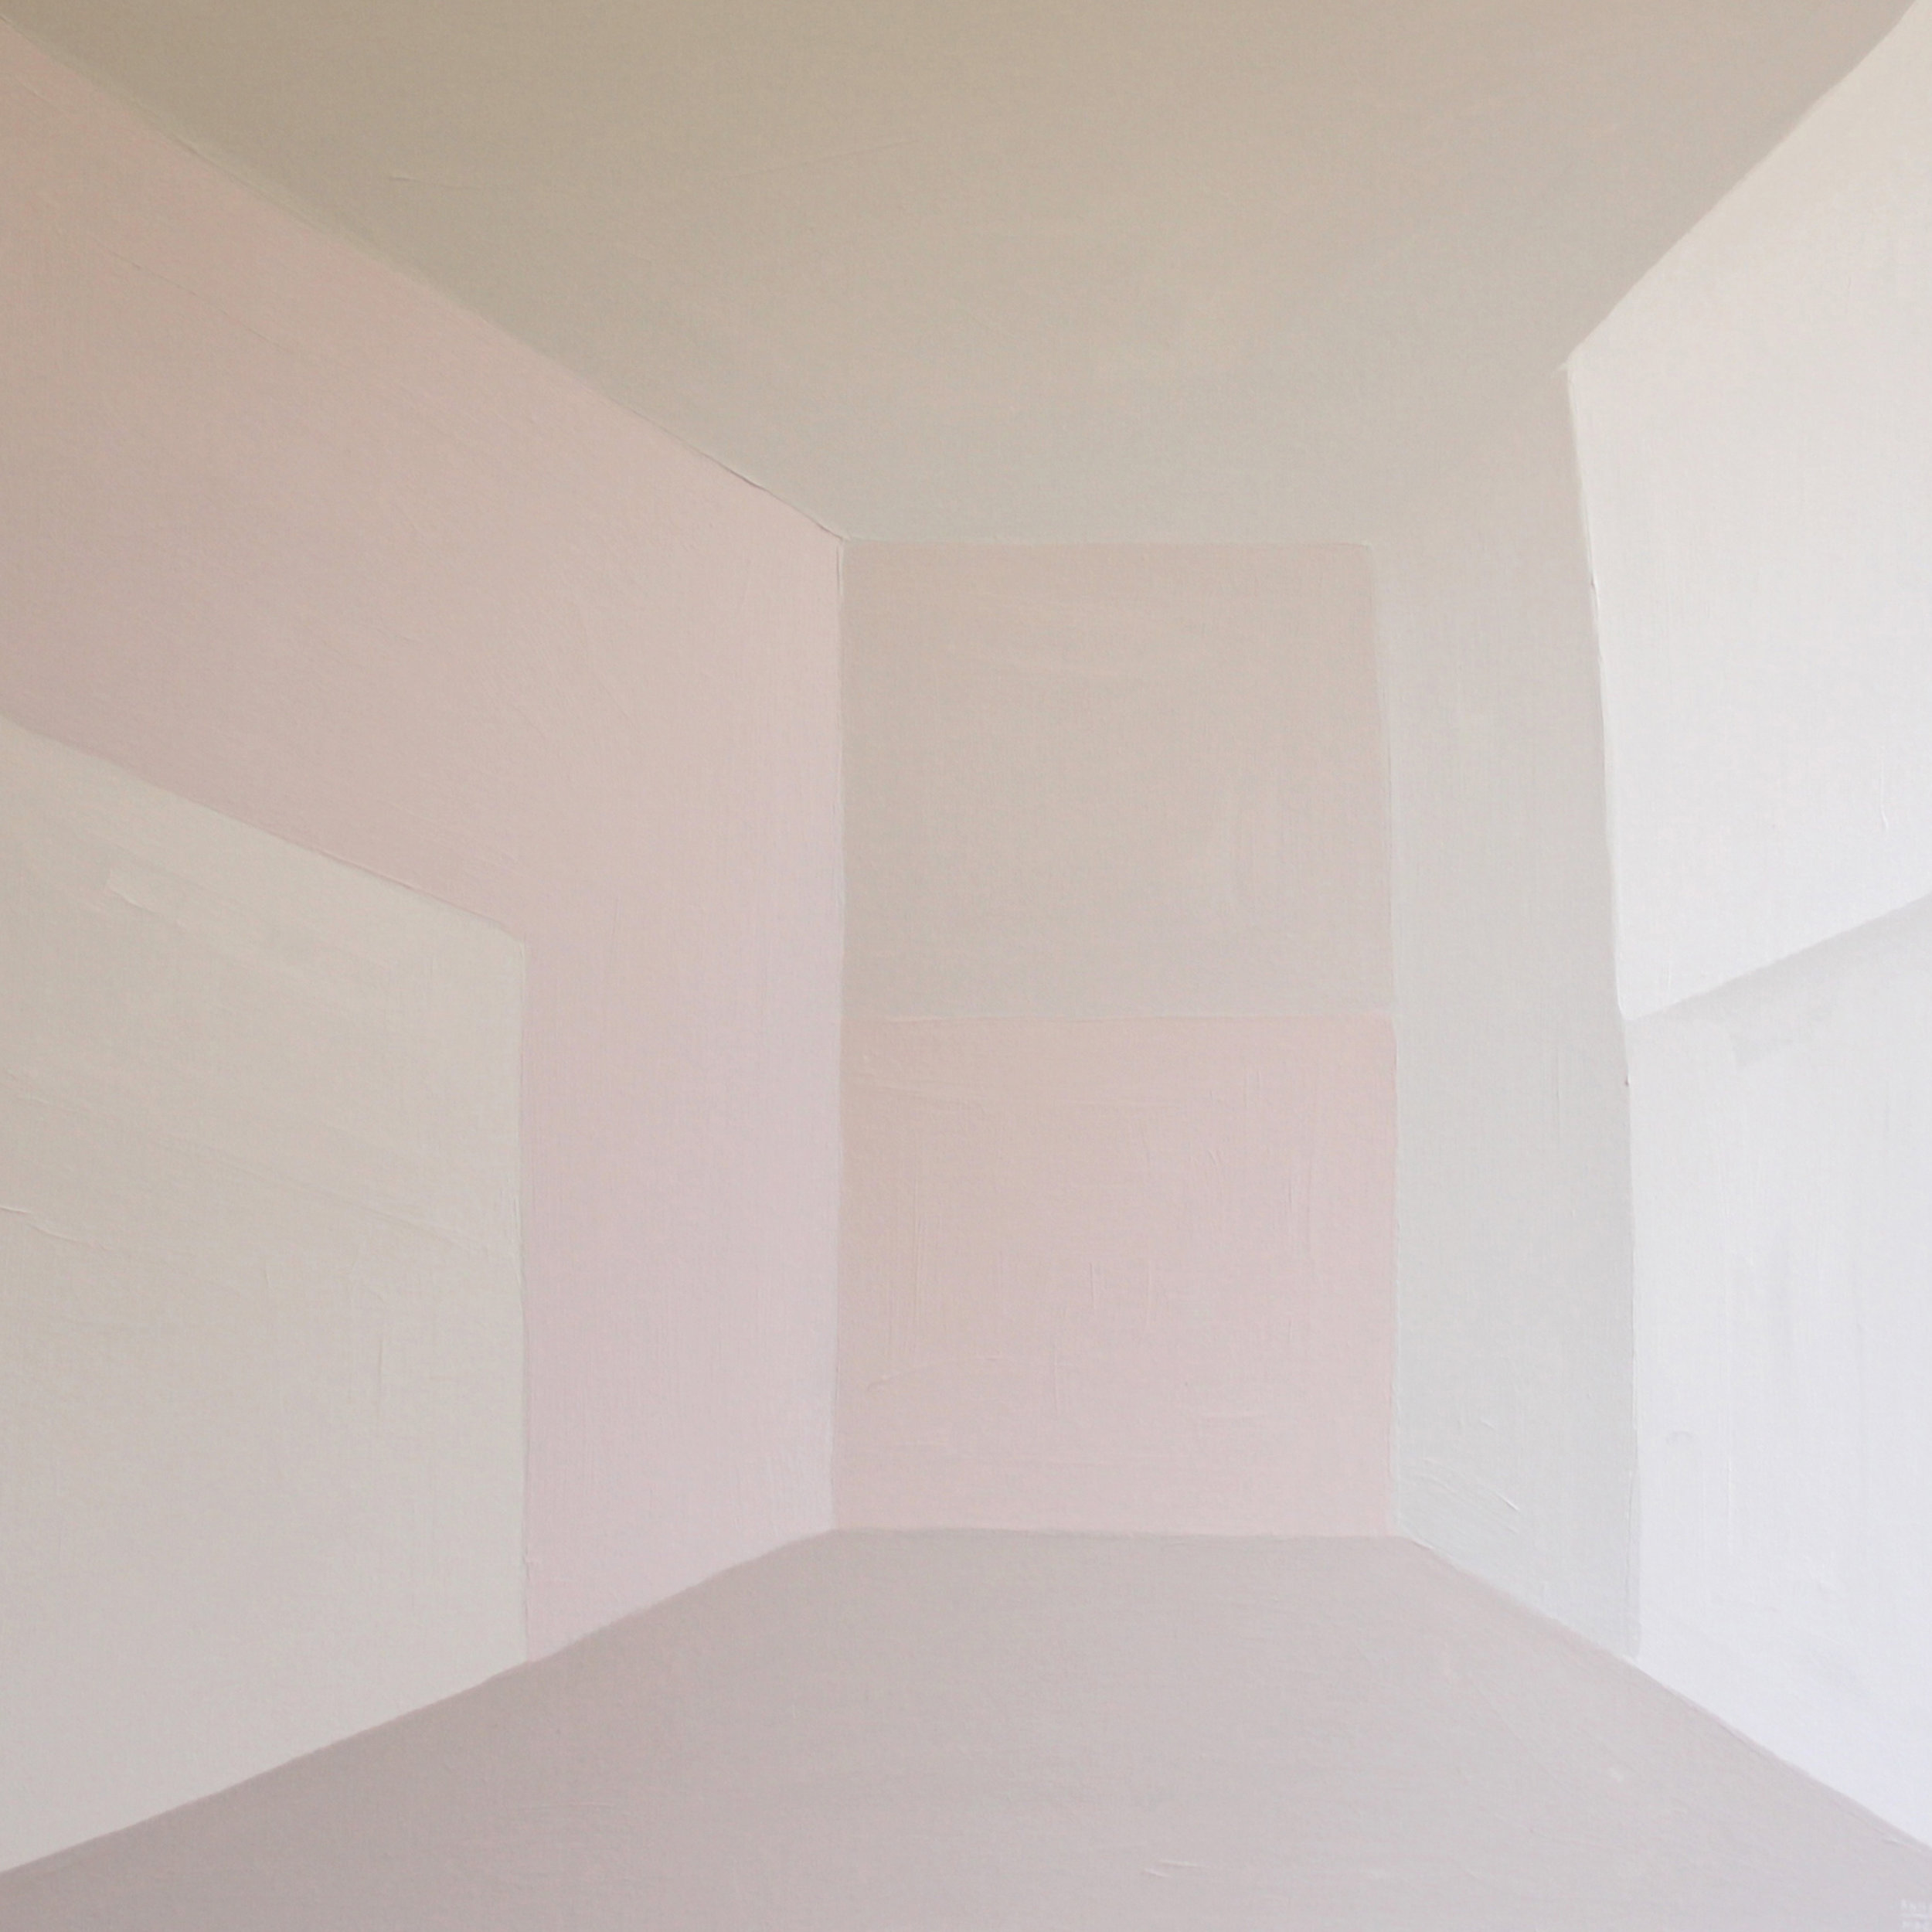 SOLD - 'Empty room, busy mind no.5'